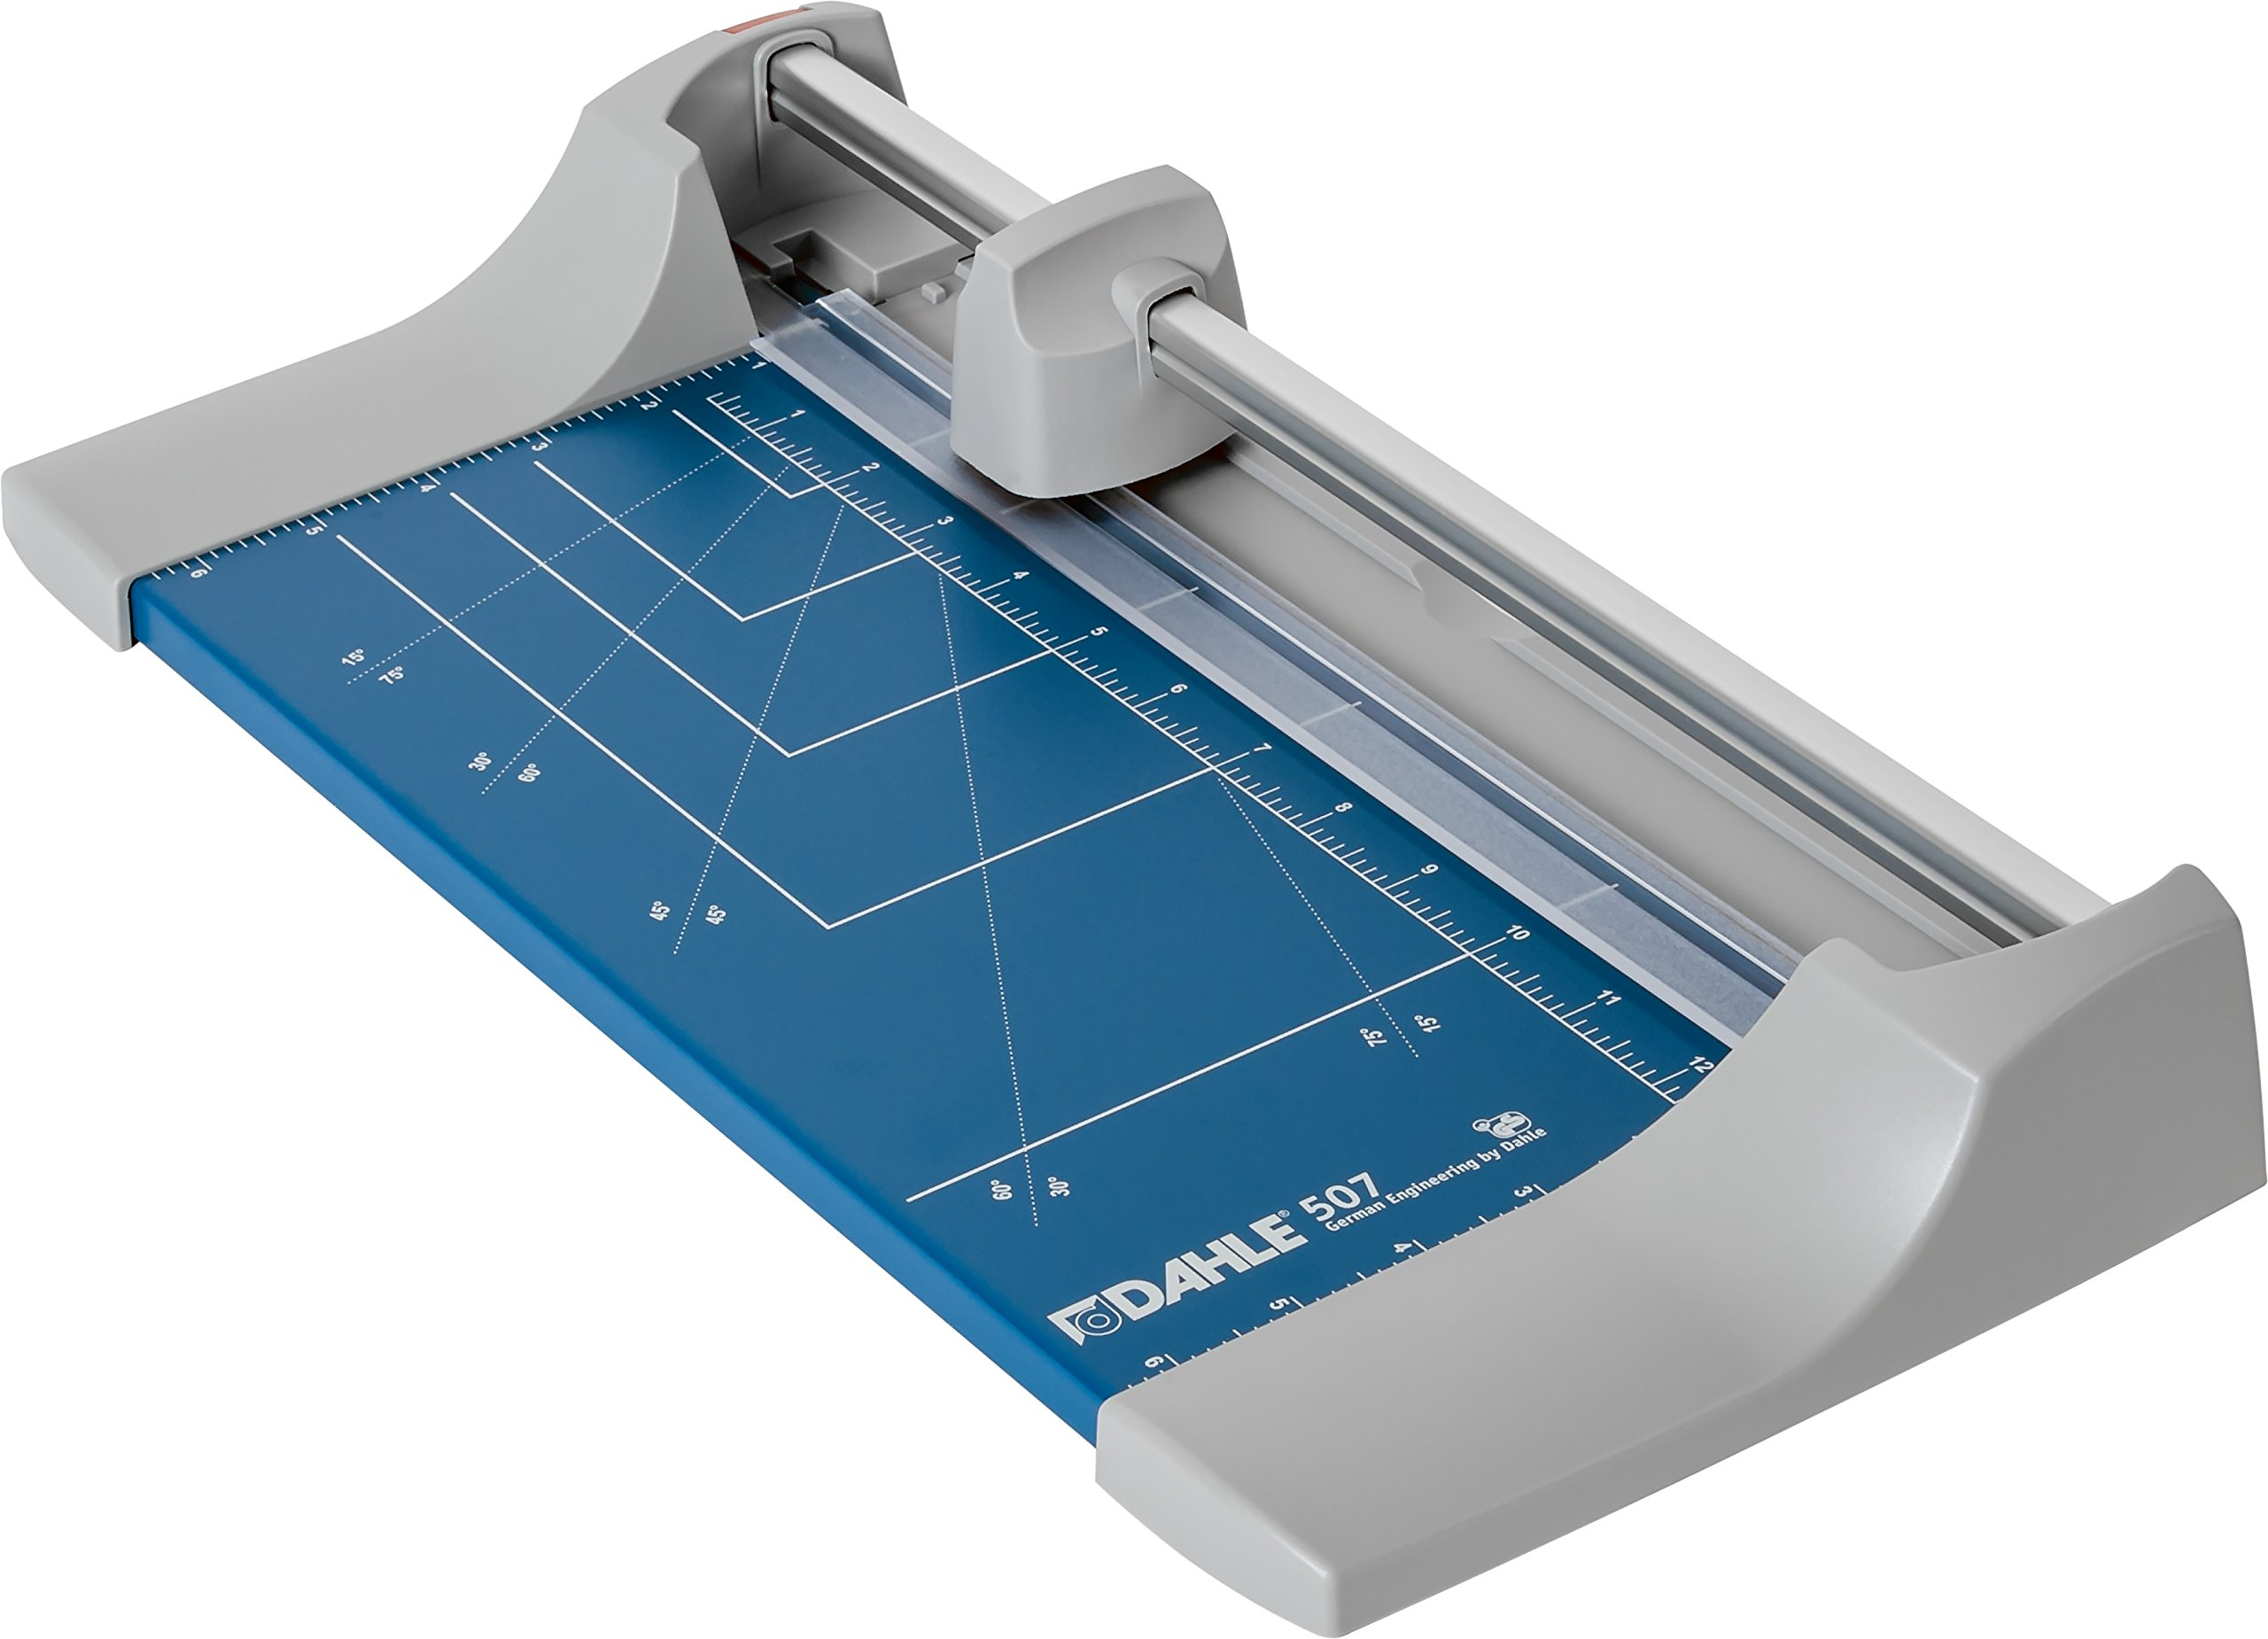 Dahle 507 Personal Rolling Trimmer, 12.5'' Cut Length, 7 Sheet Capacity, Self-Sharpening, Automatic Clamp, German Engineered Paper Cutter